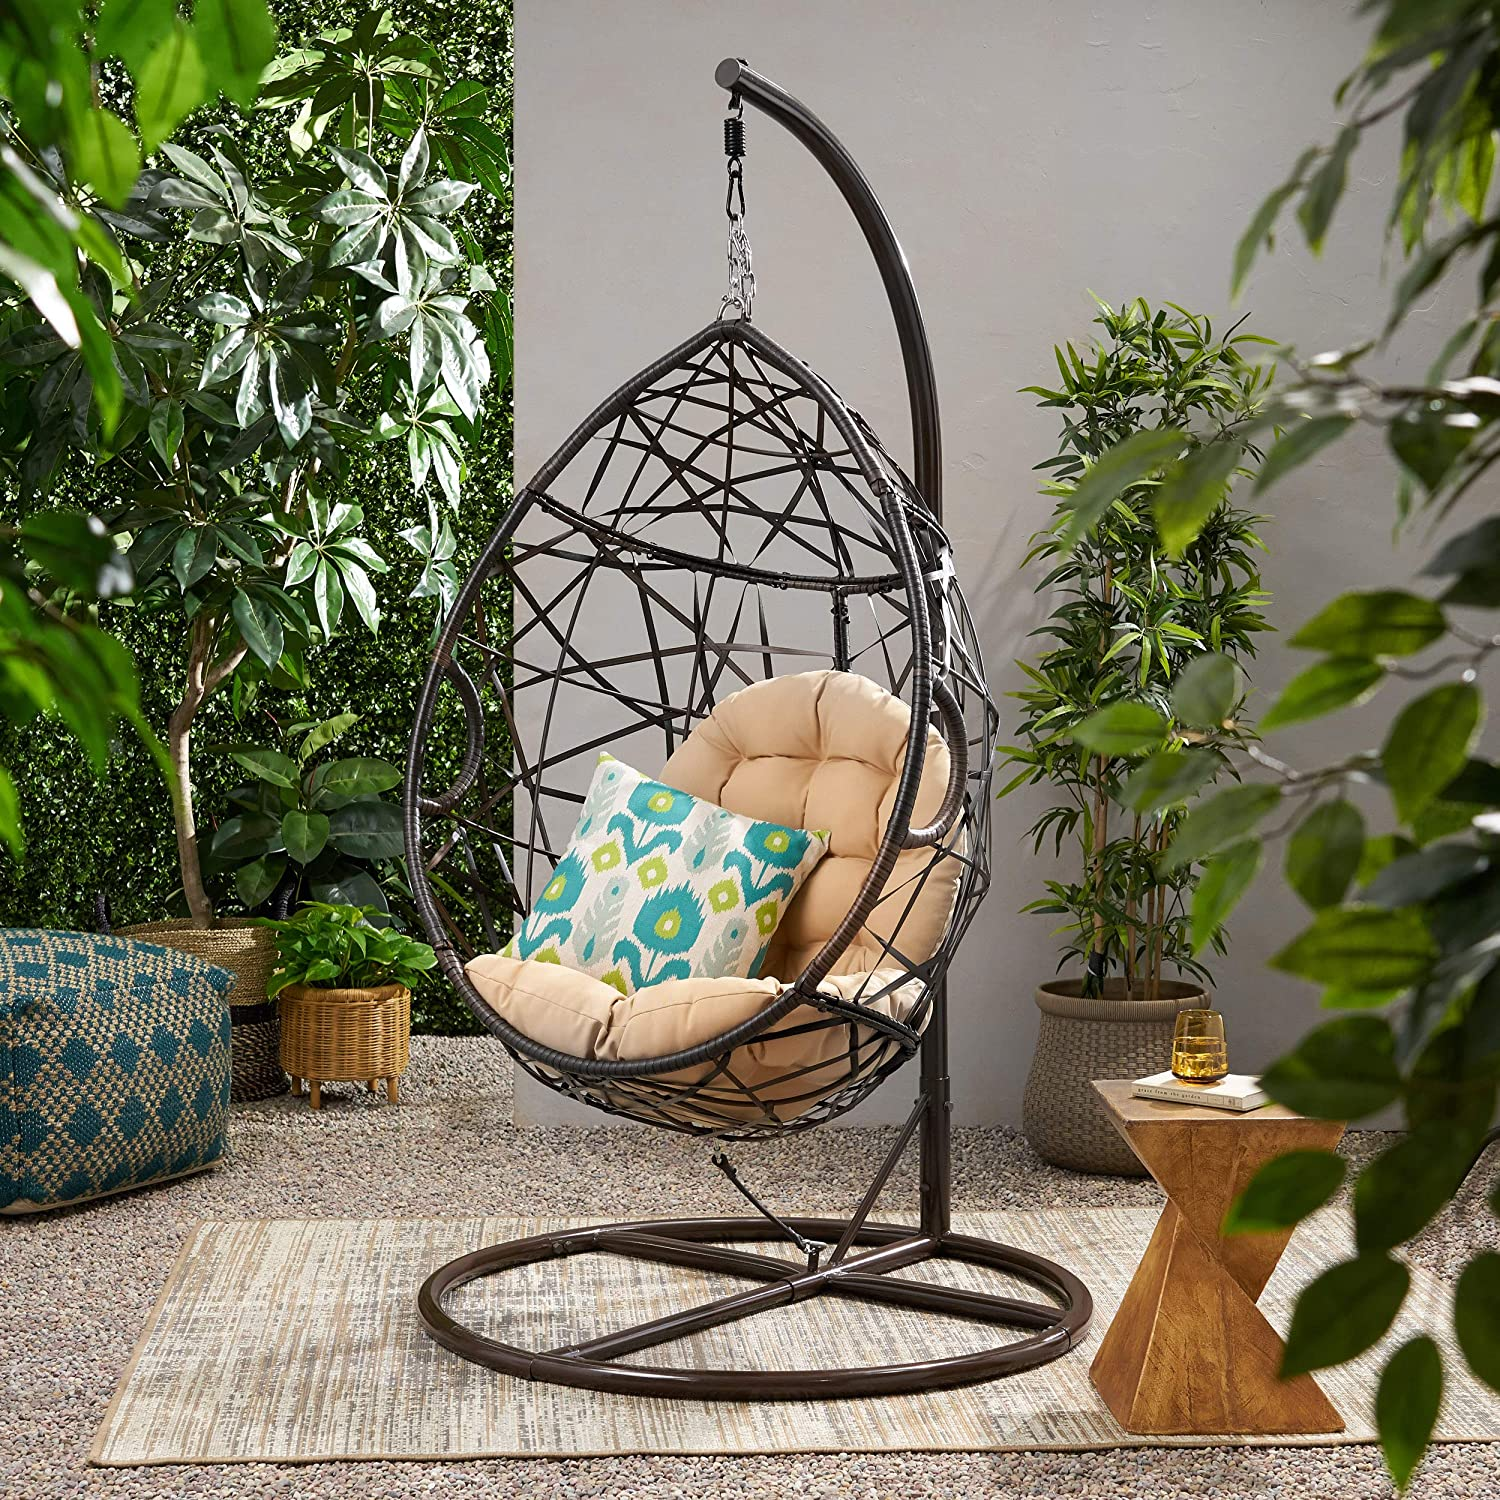 Top 10 hanging chairs for houses and gardens 2020 12